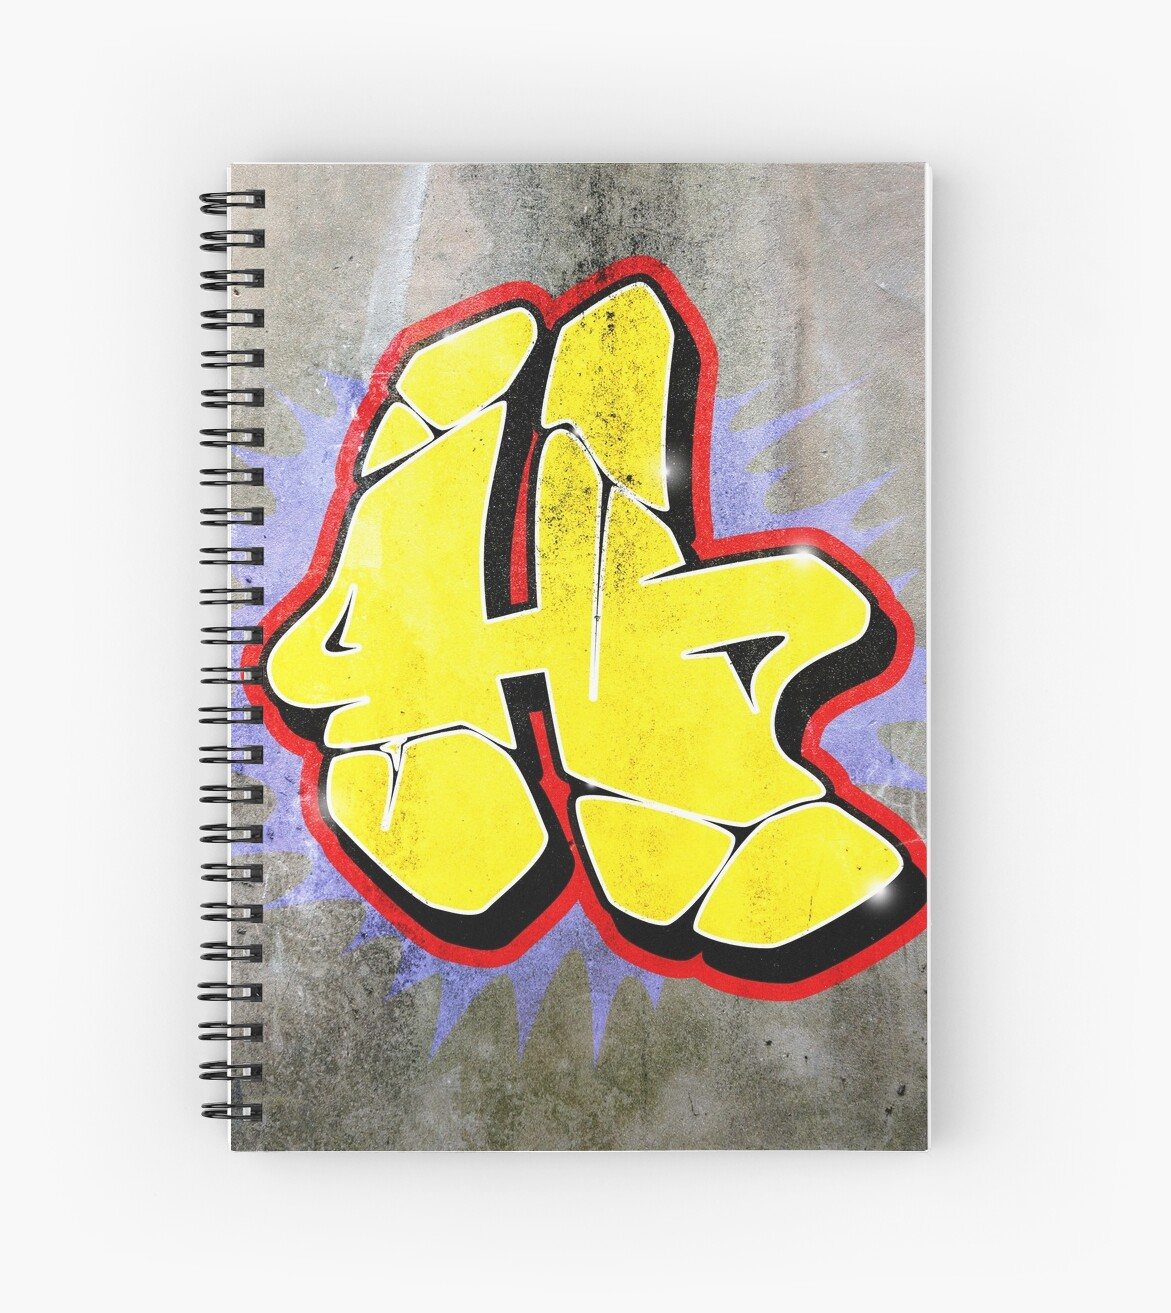 H Graffiti Letter Wild Style By Joax